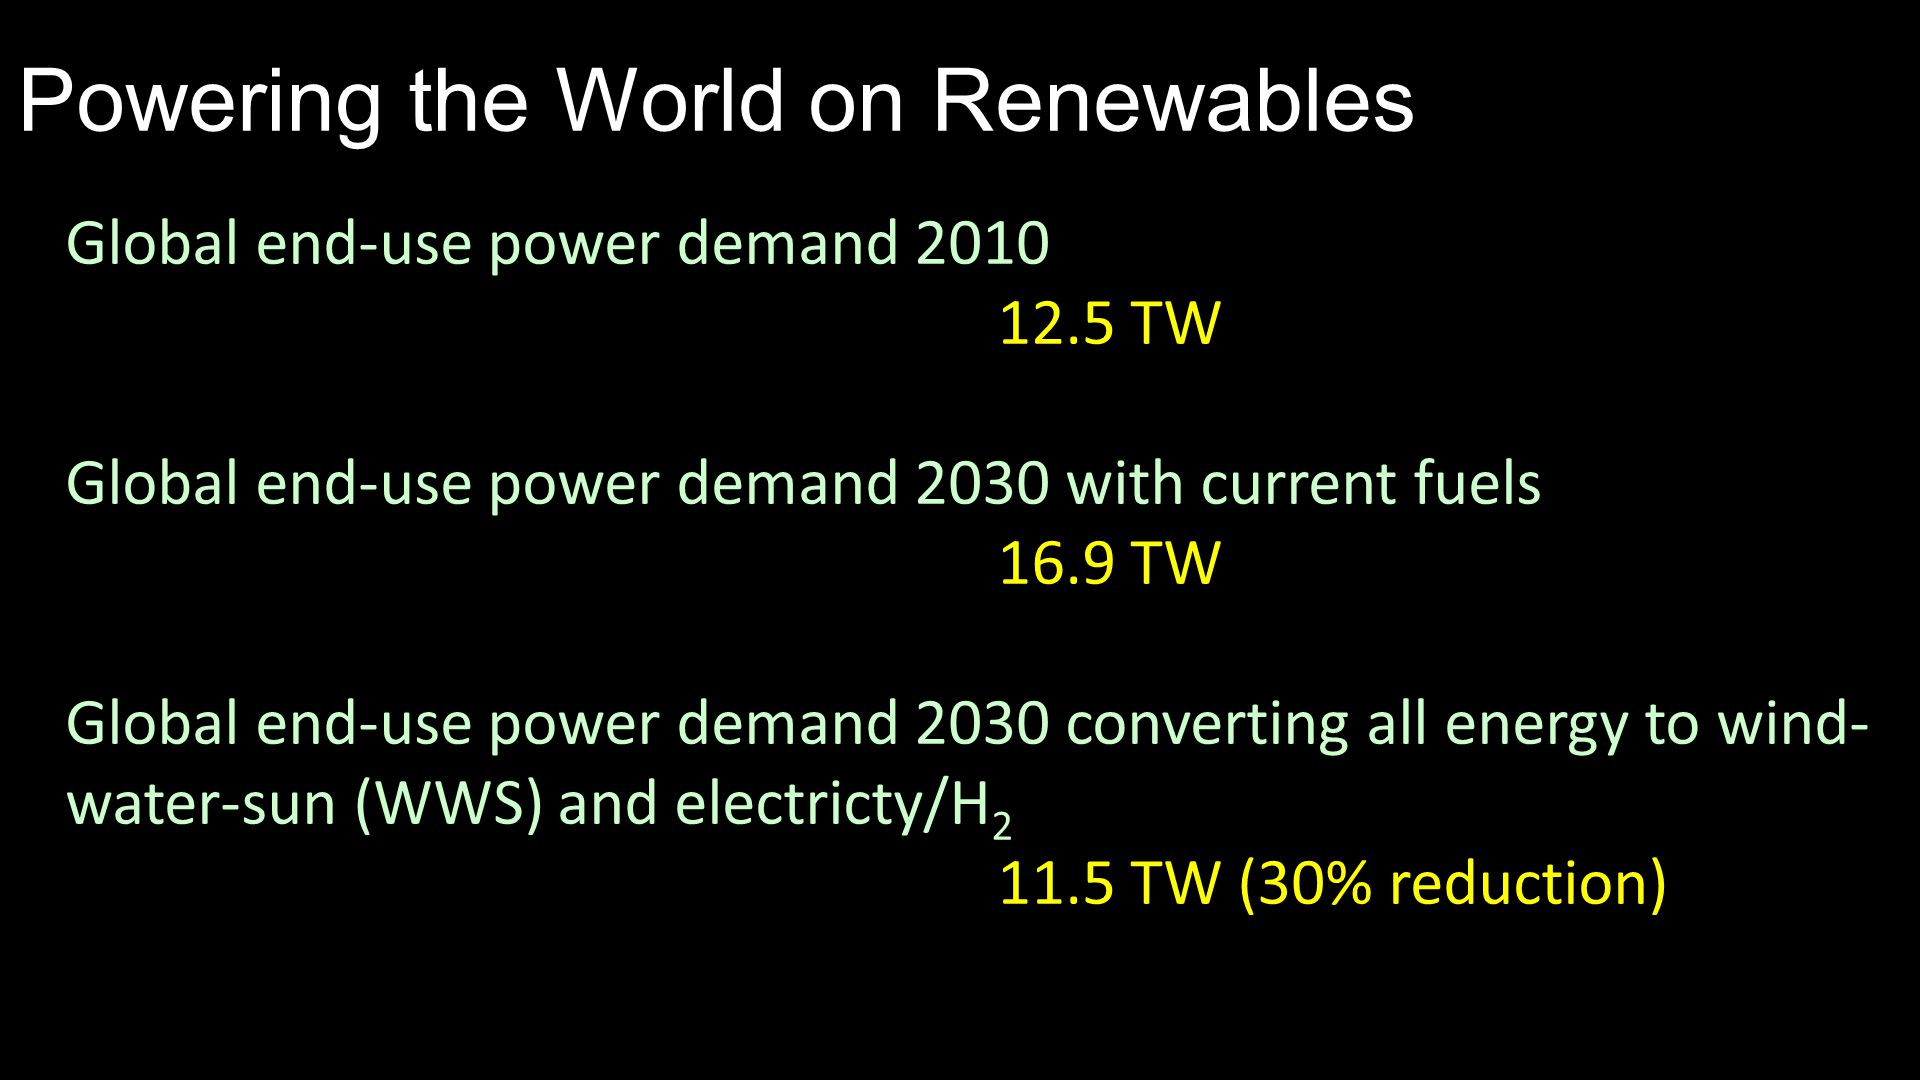 Powering the World on Renewables Global end-use power demand 2010 12.5 TW Global end-use power demand 2030 with current fuels 16.9 TW Global end-use power demand 2030 converting all energy to wind- water-sun (WWS) and electricty/H 2 11.5 TW (30% reduction)  Conversion to electricity, H 2 reduces power demand 30%